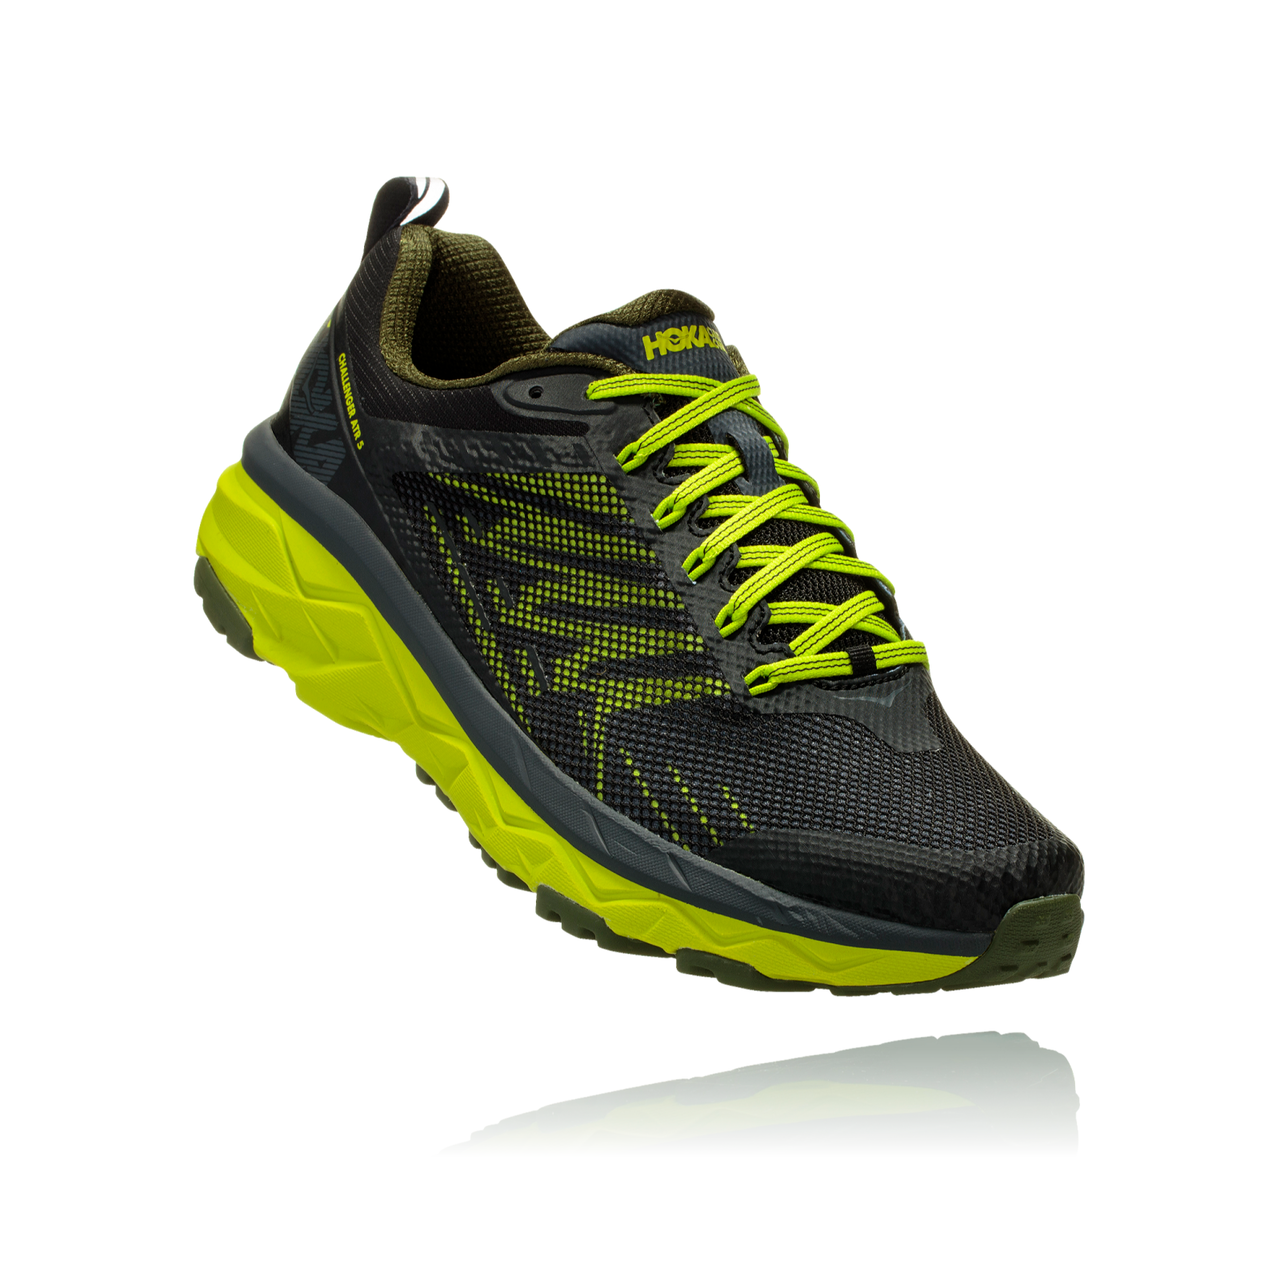 Hoka One One Men's Challenger ATR 5 Trail Shoe - 2019 price